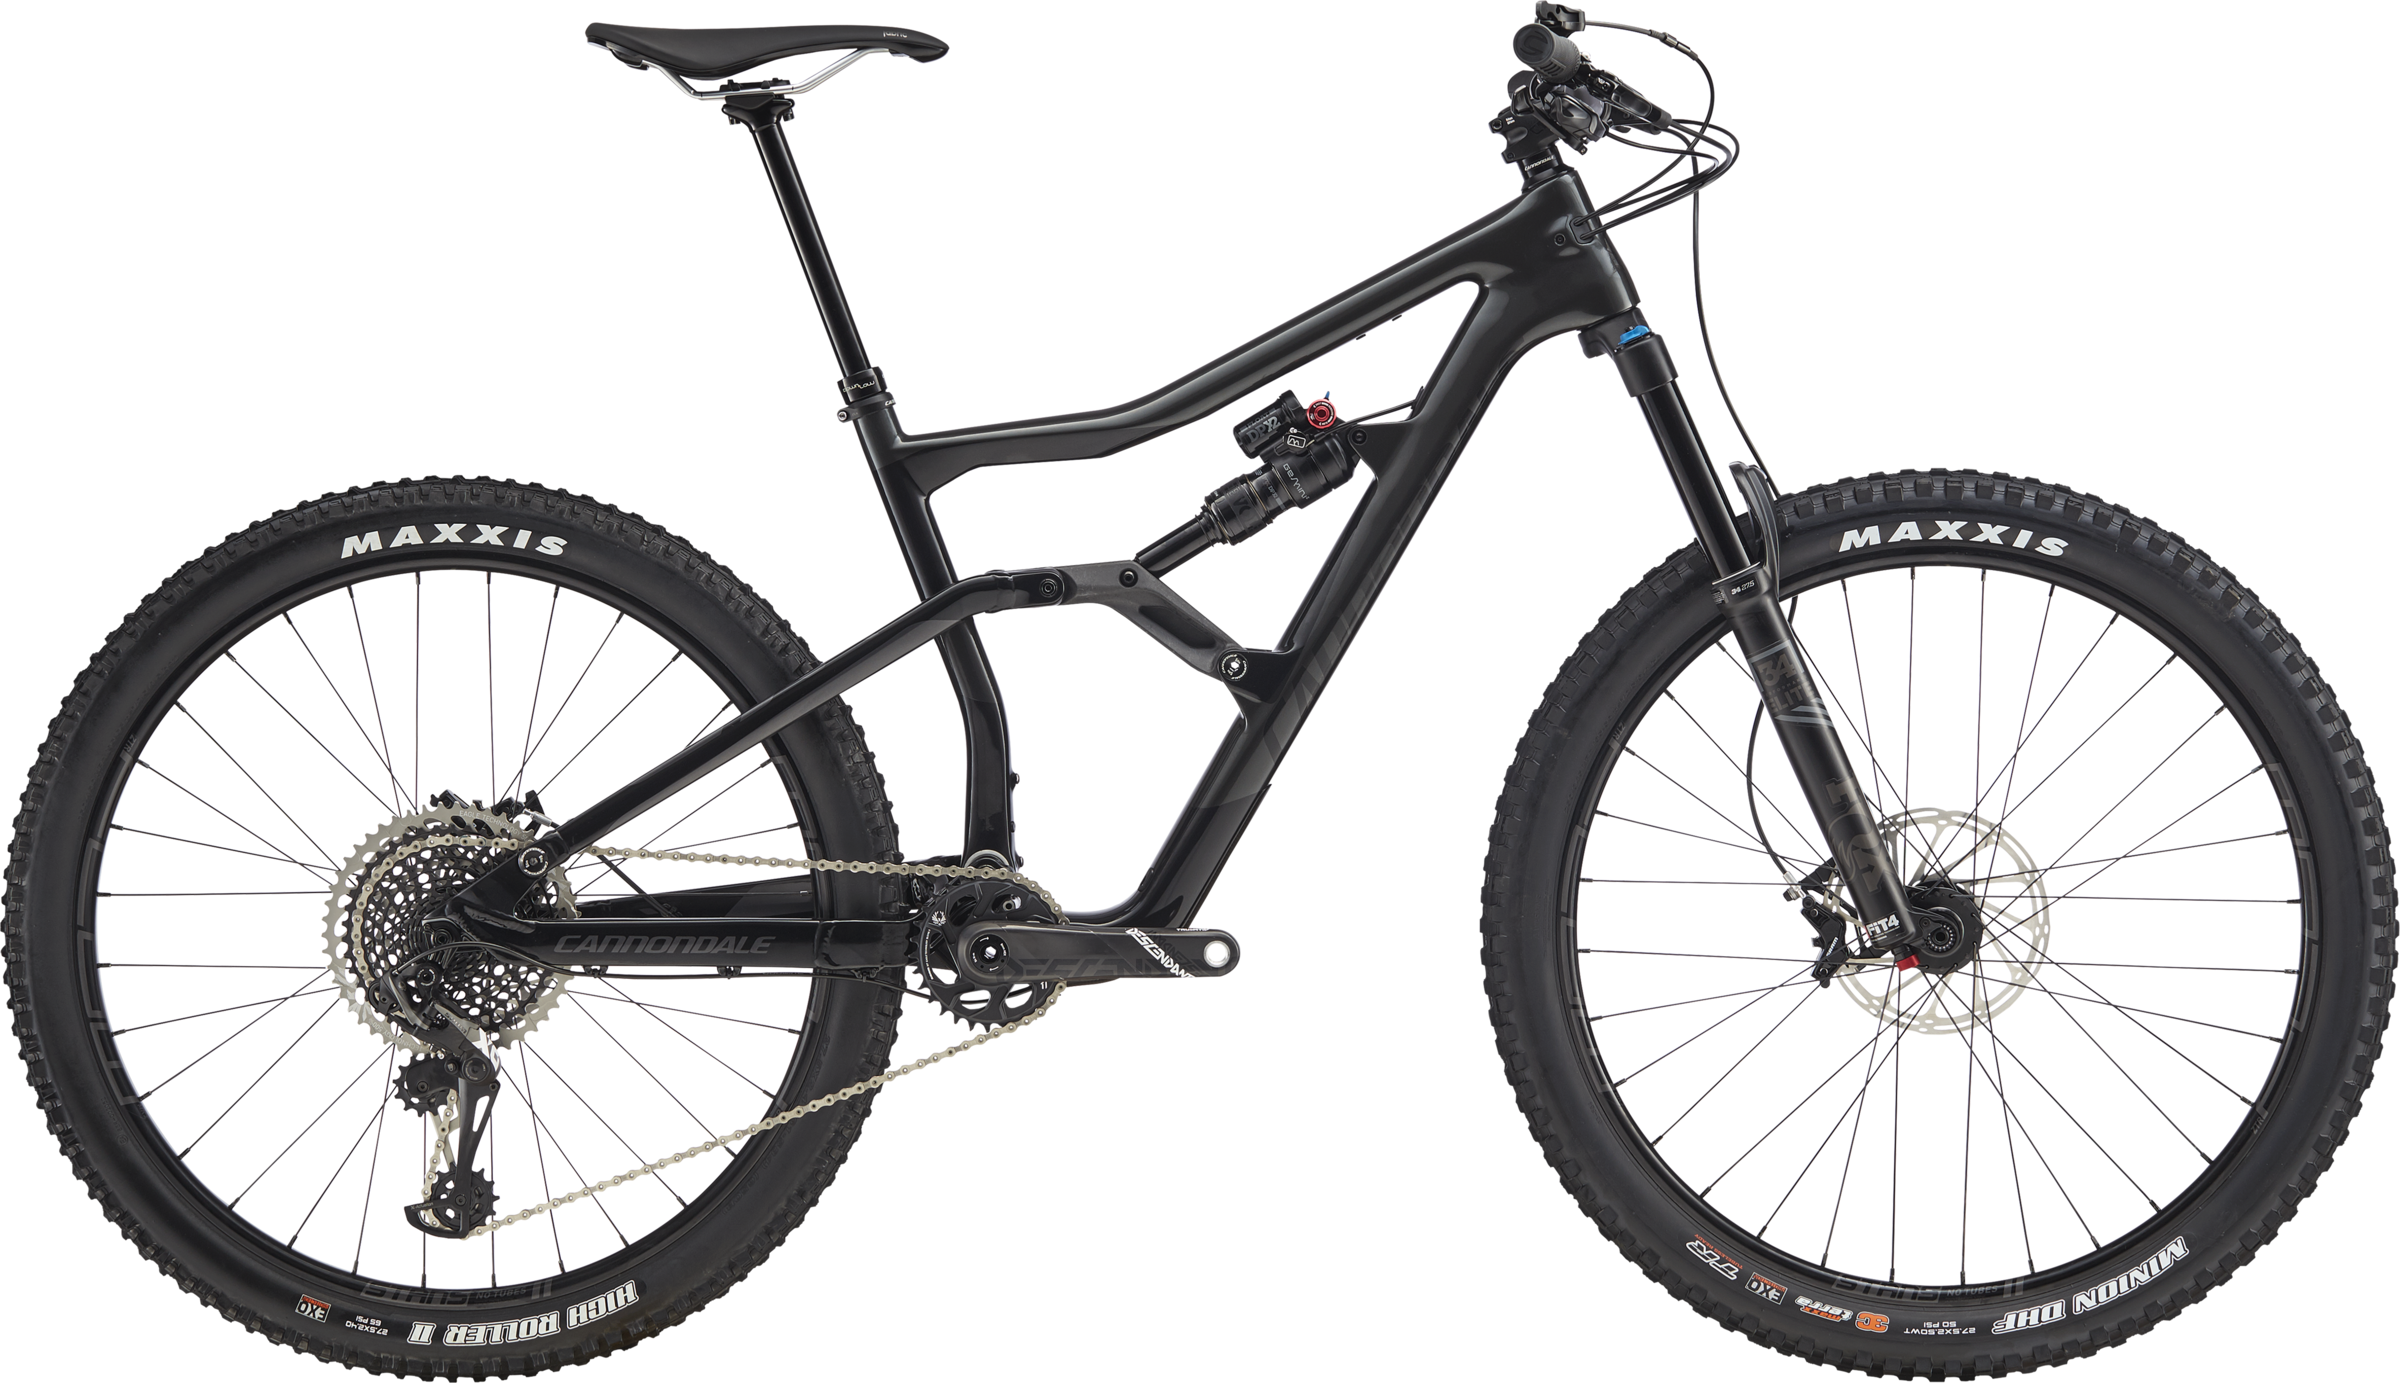 Cannondale Trigger Alloy 27.5 Seat Stay Black